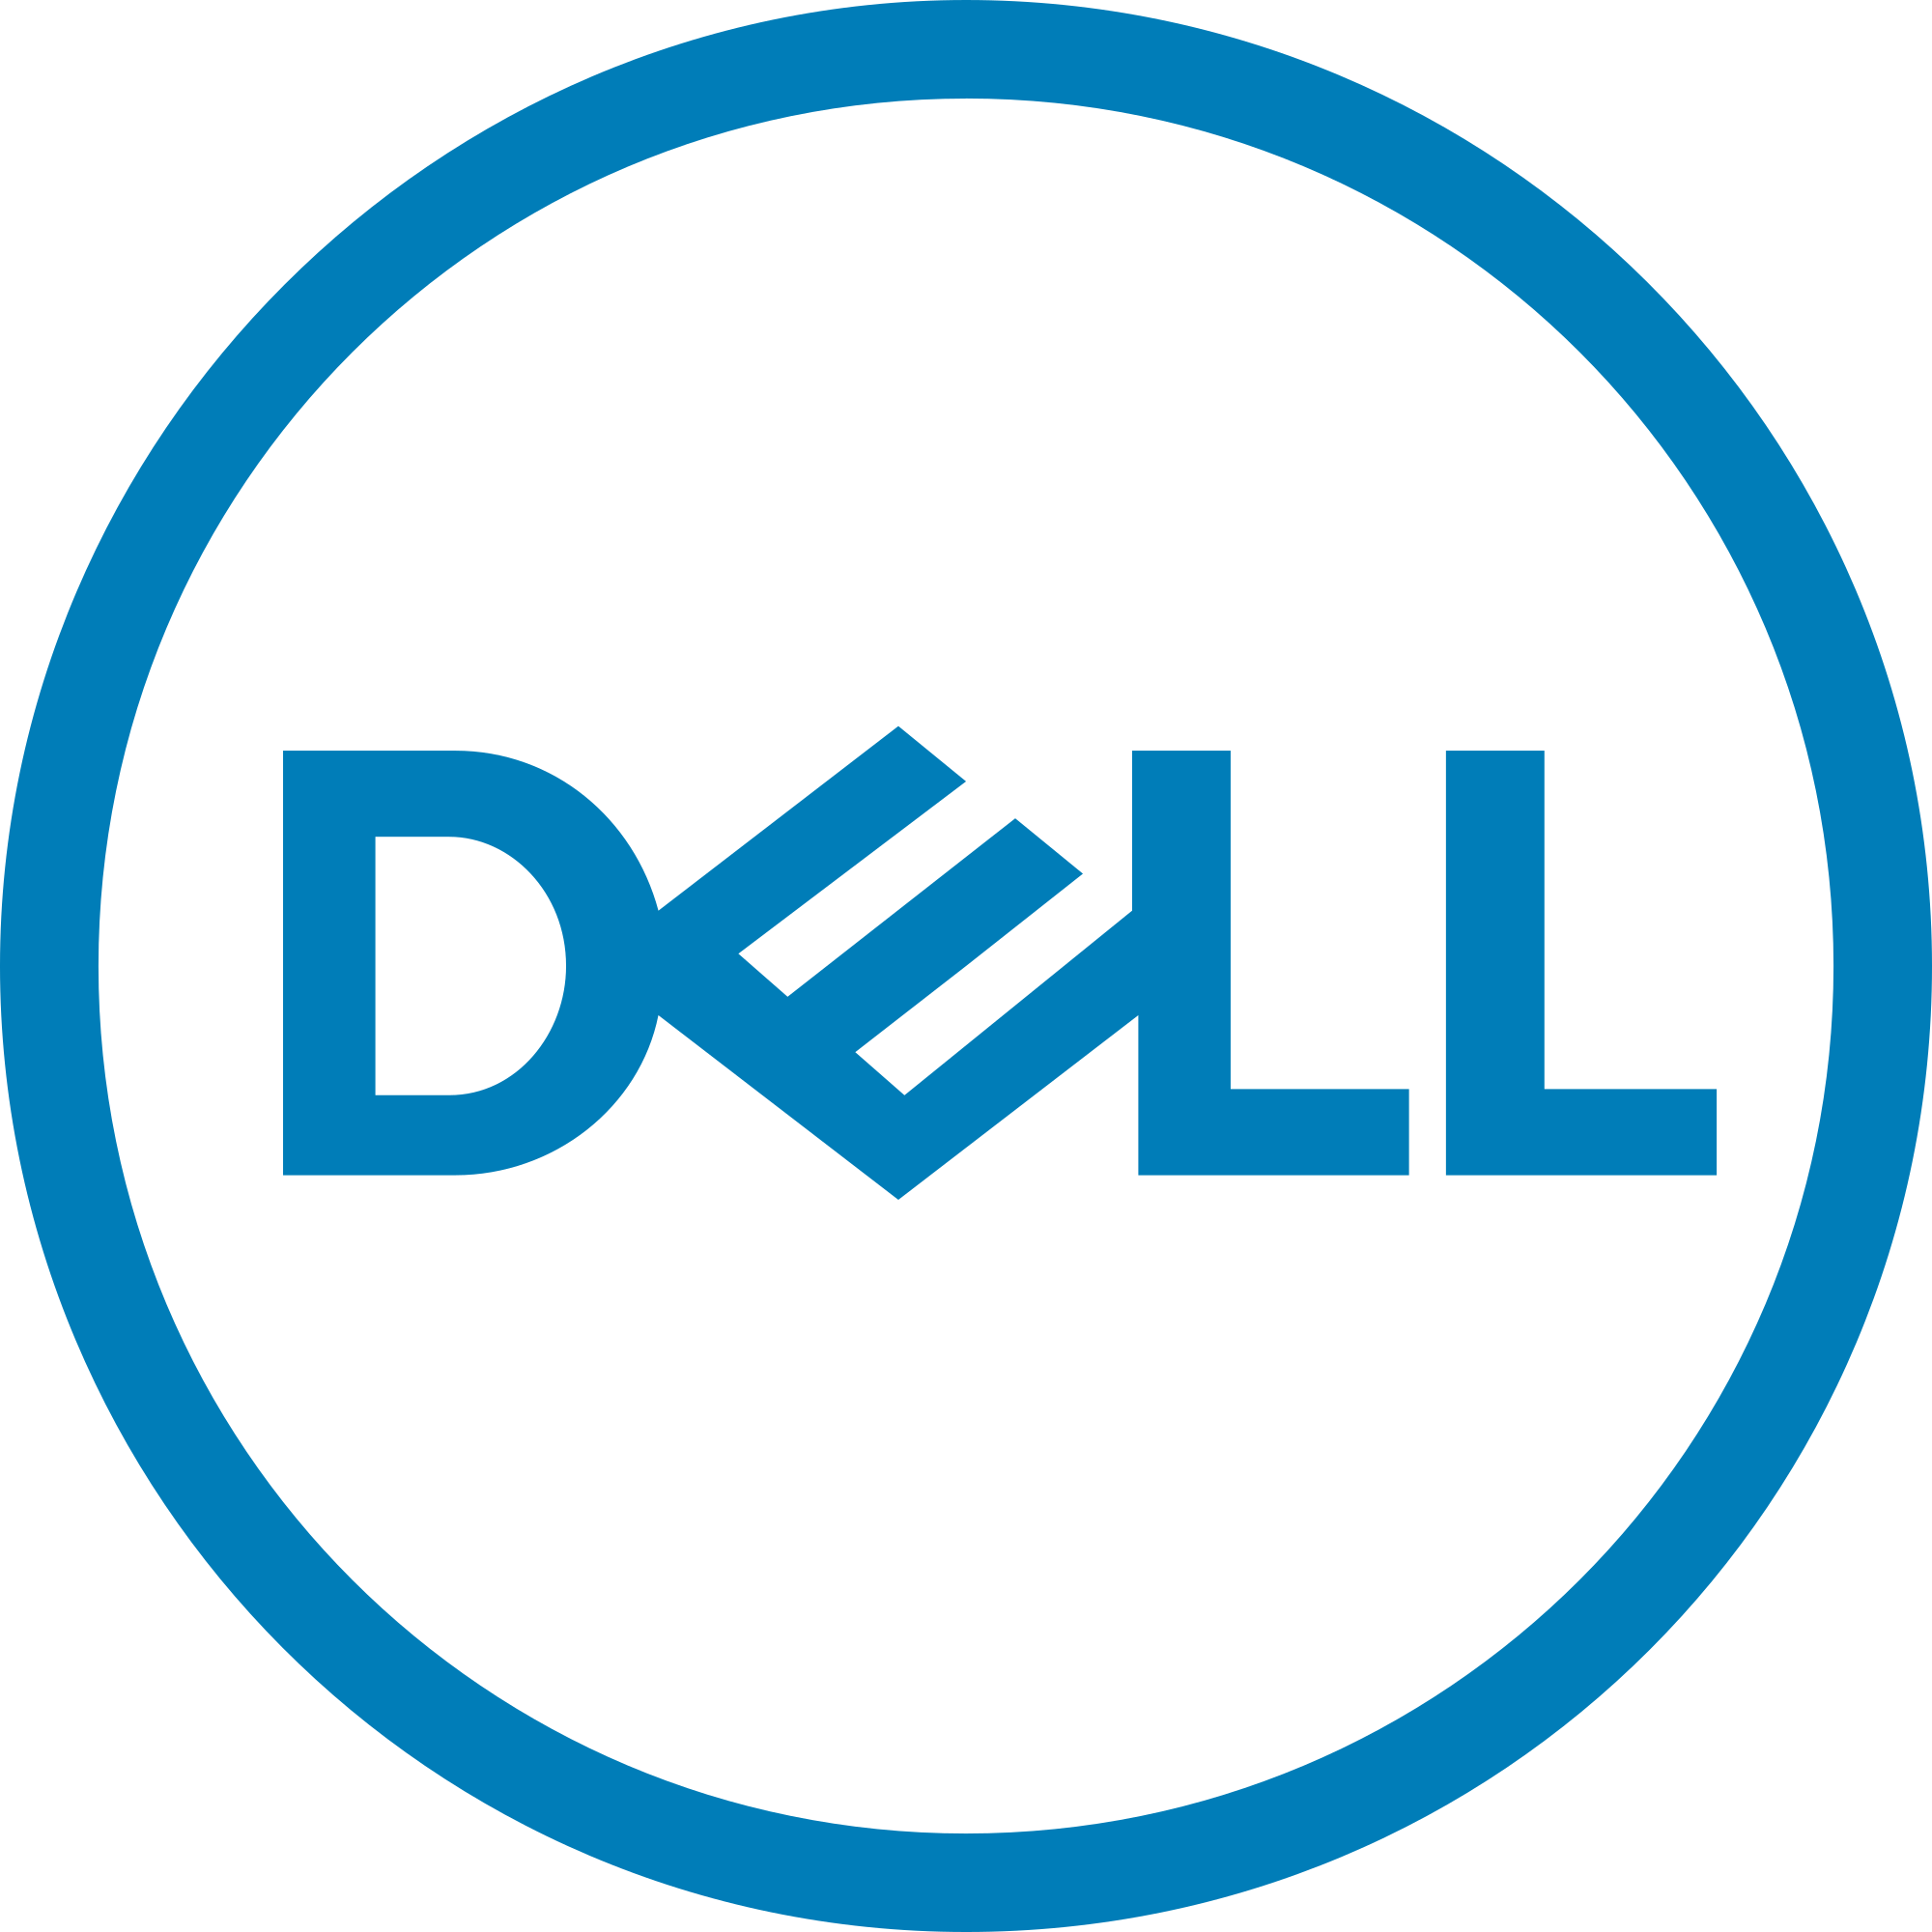 Dell Logo PNG - 29606